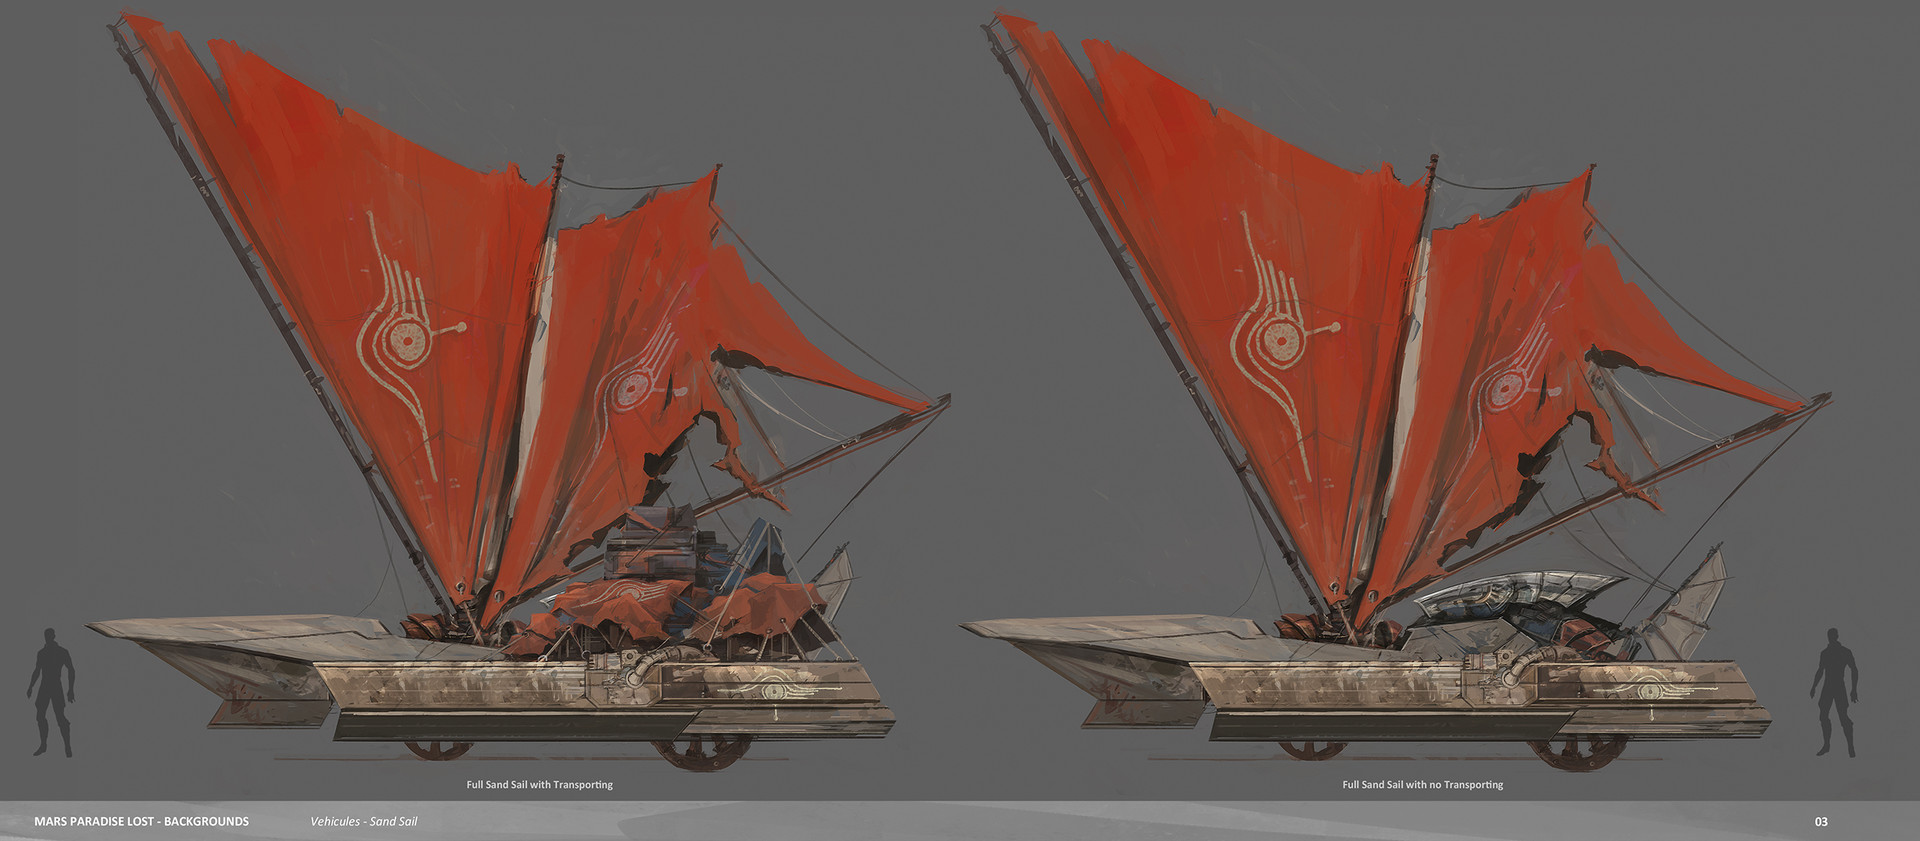 Alexandre chaudret mpl backgrounds vehicules sandsails03